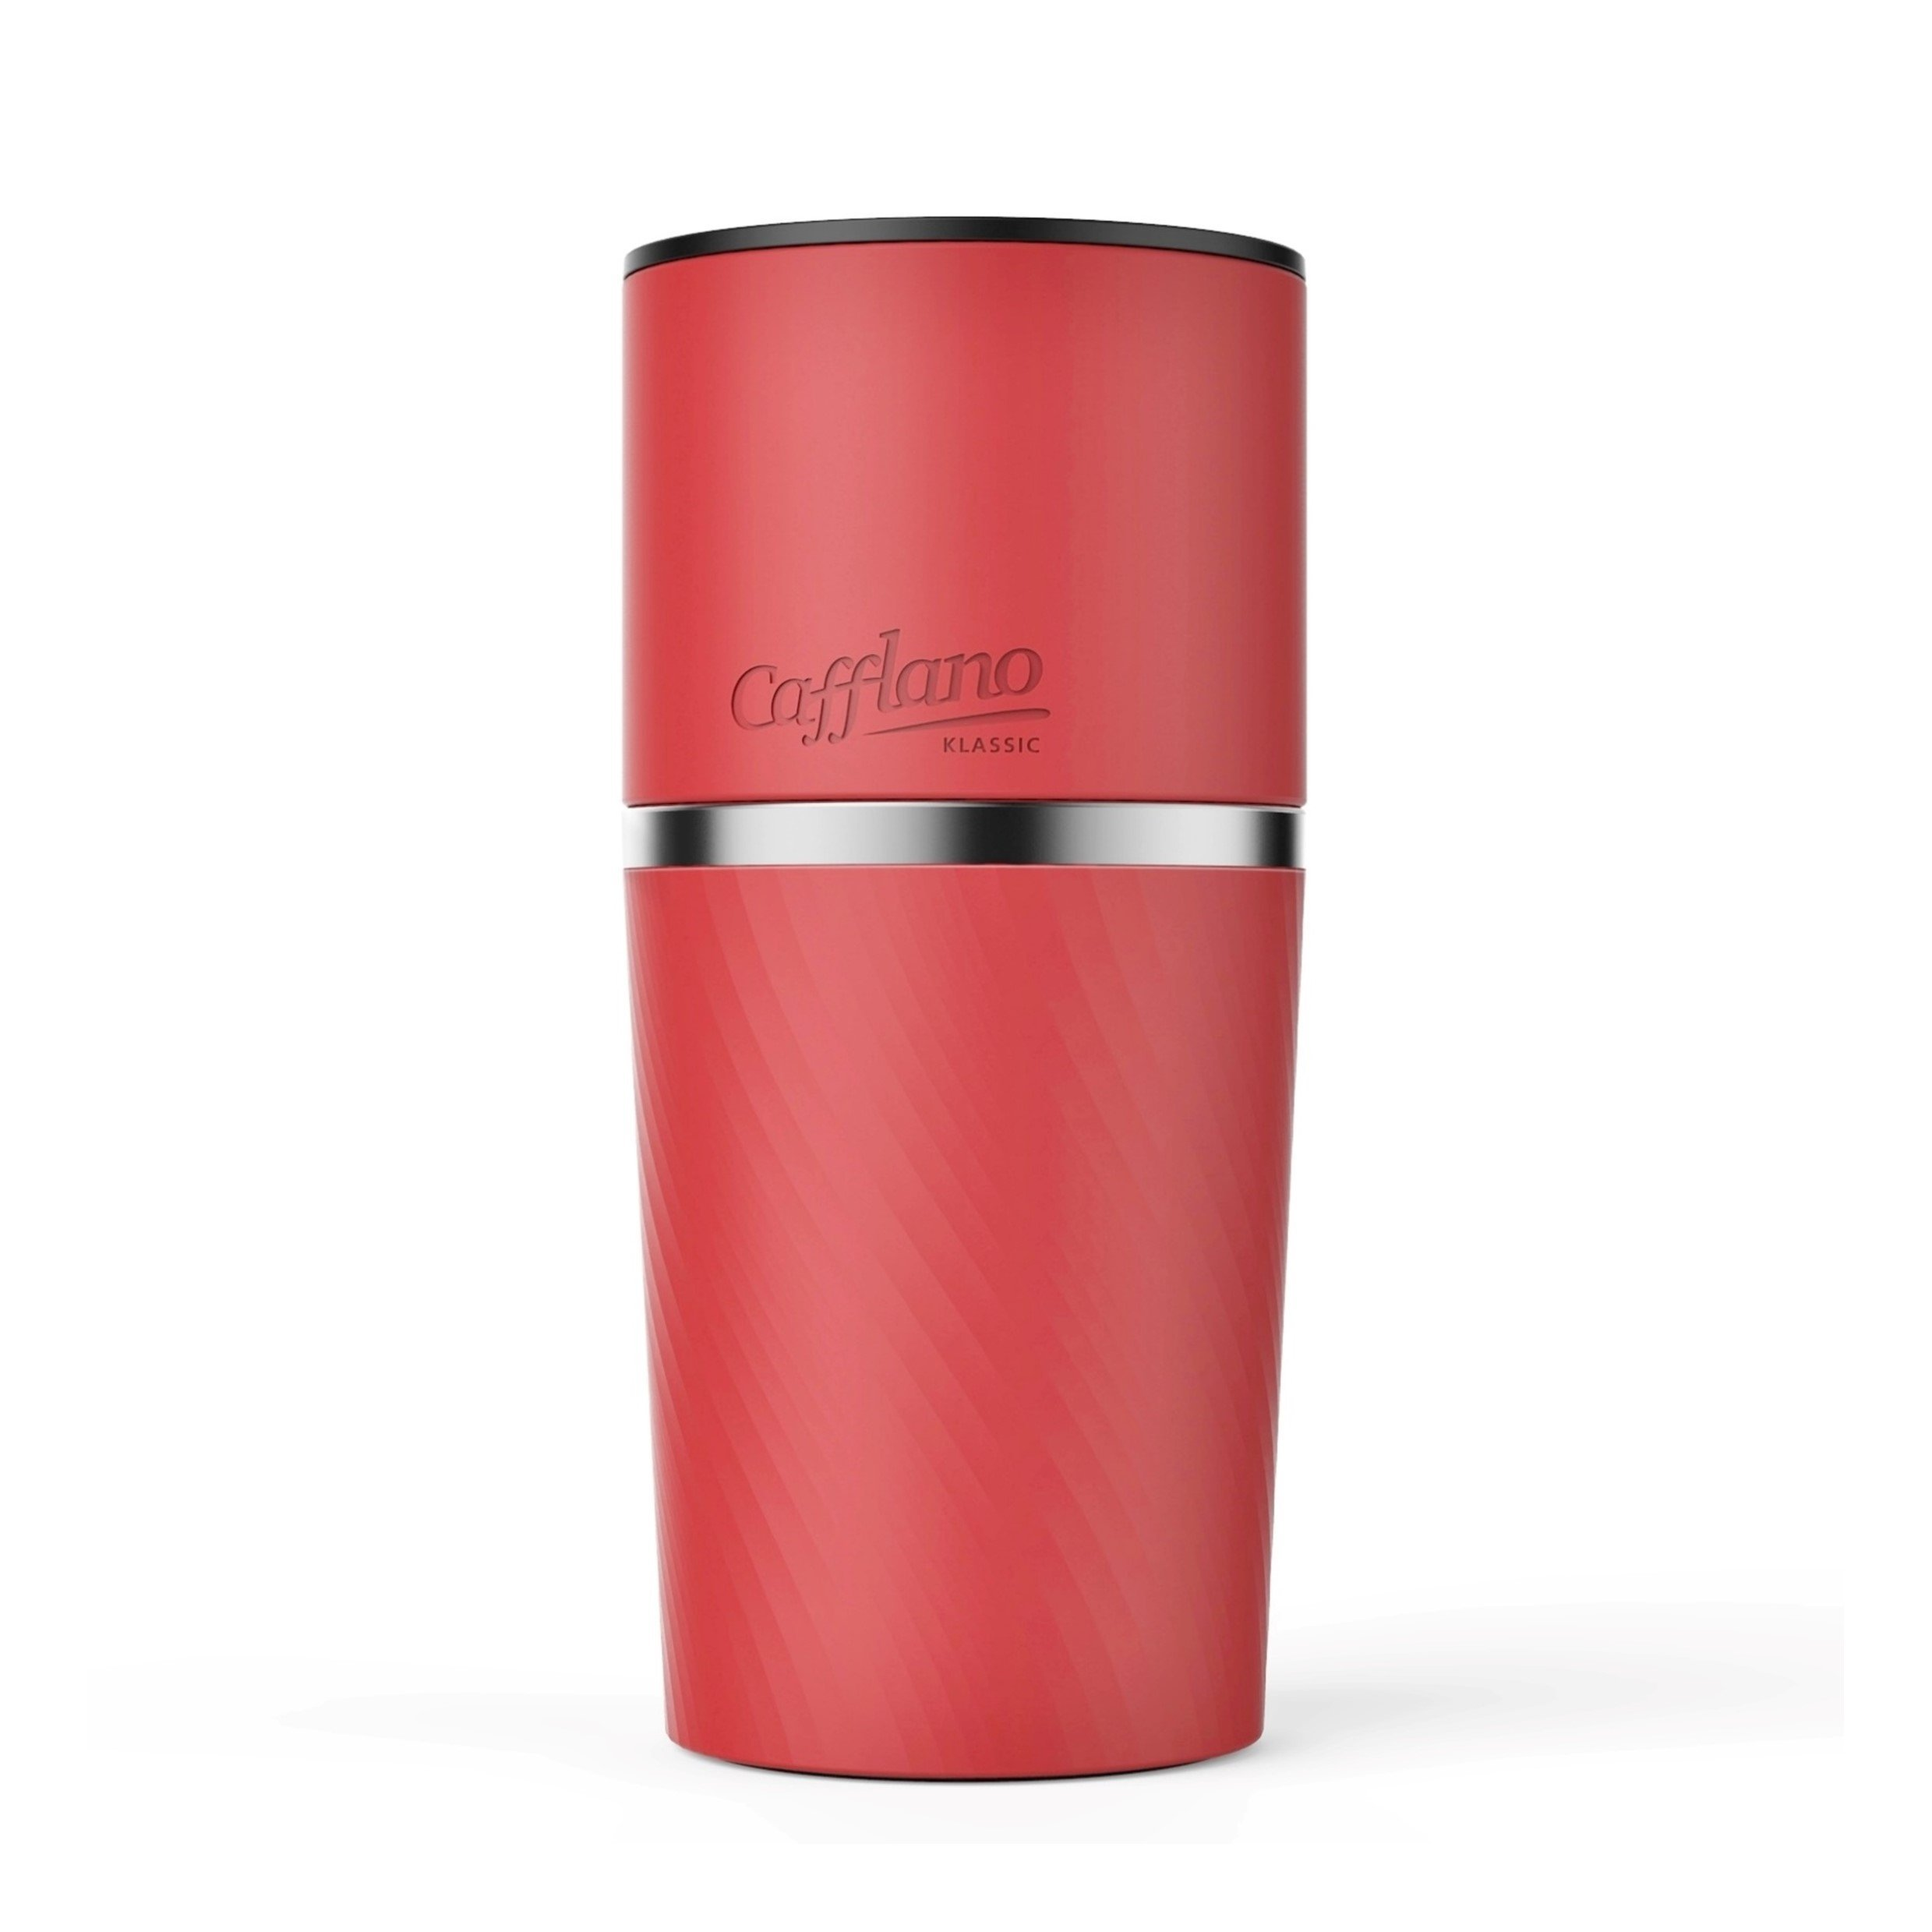 Cafflano Klassic Red Pour-Over Coffee Maker by Cafflano